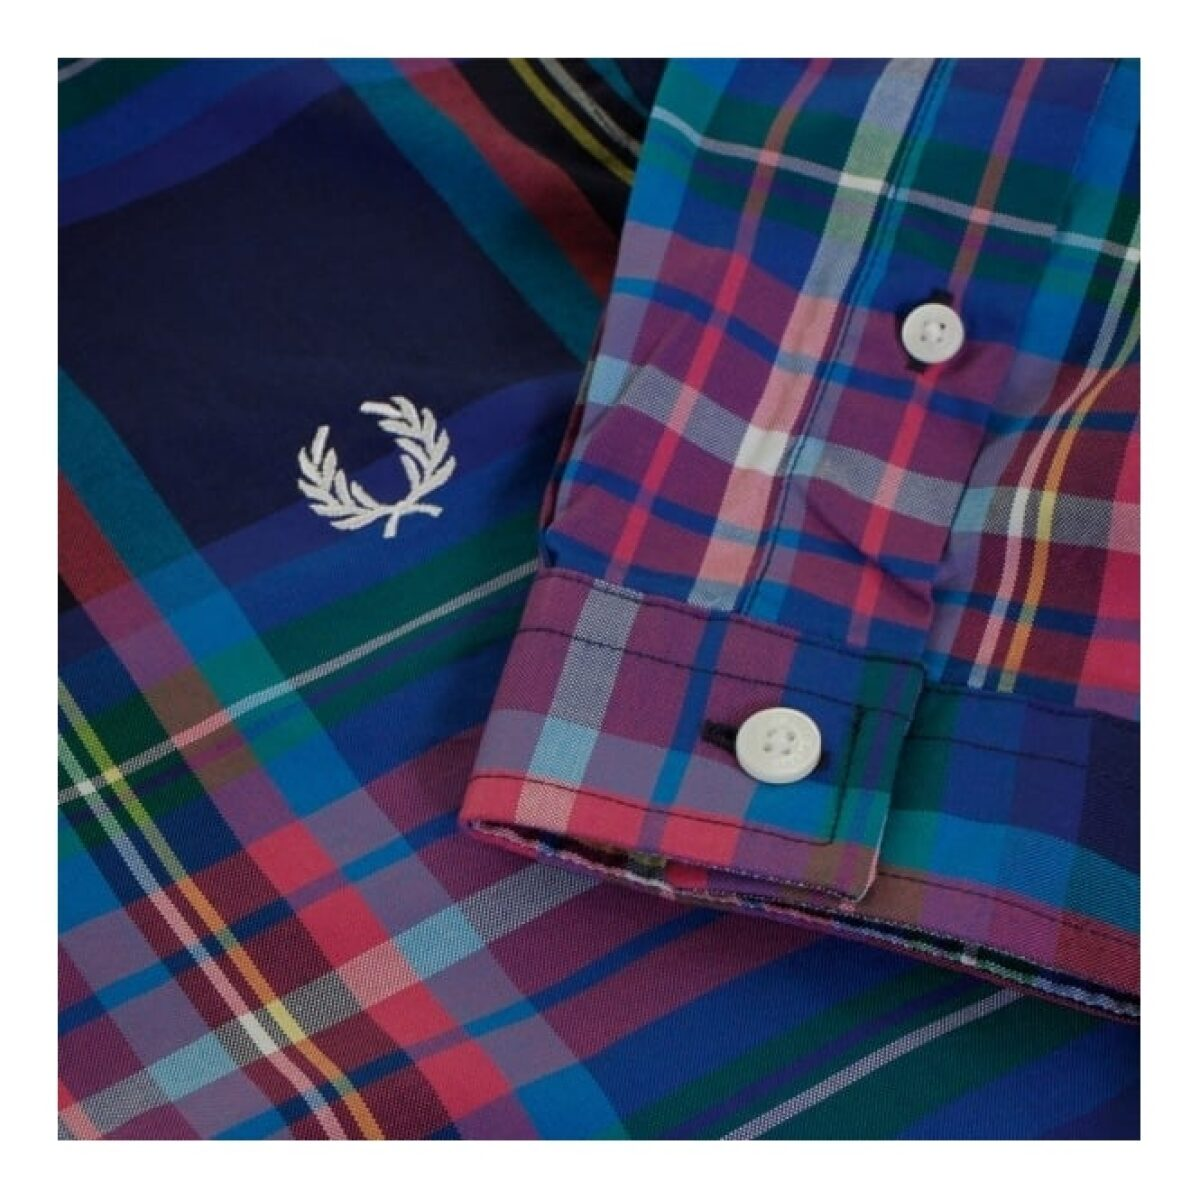 fred perry authentic fred perry bright tartan french navy shirt m9532 143 p23974 90939 medium